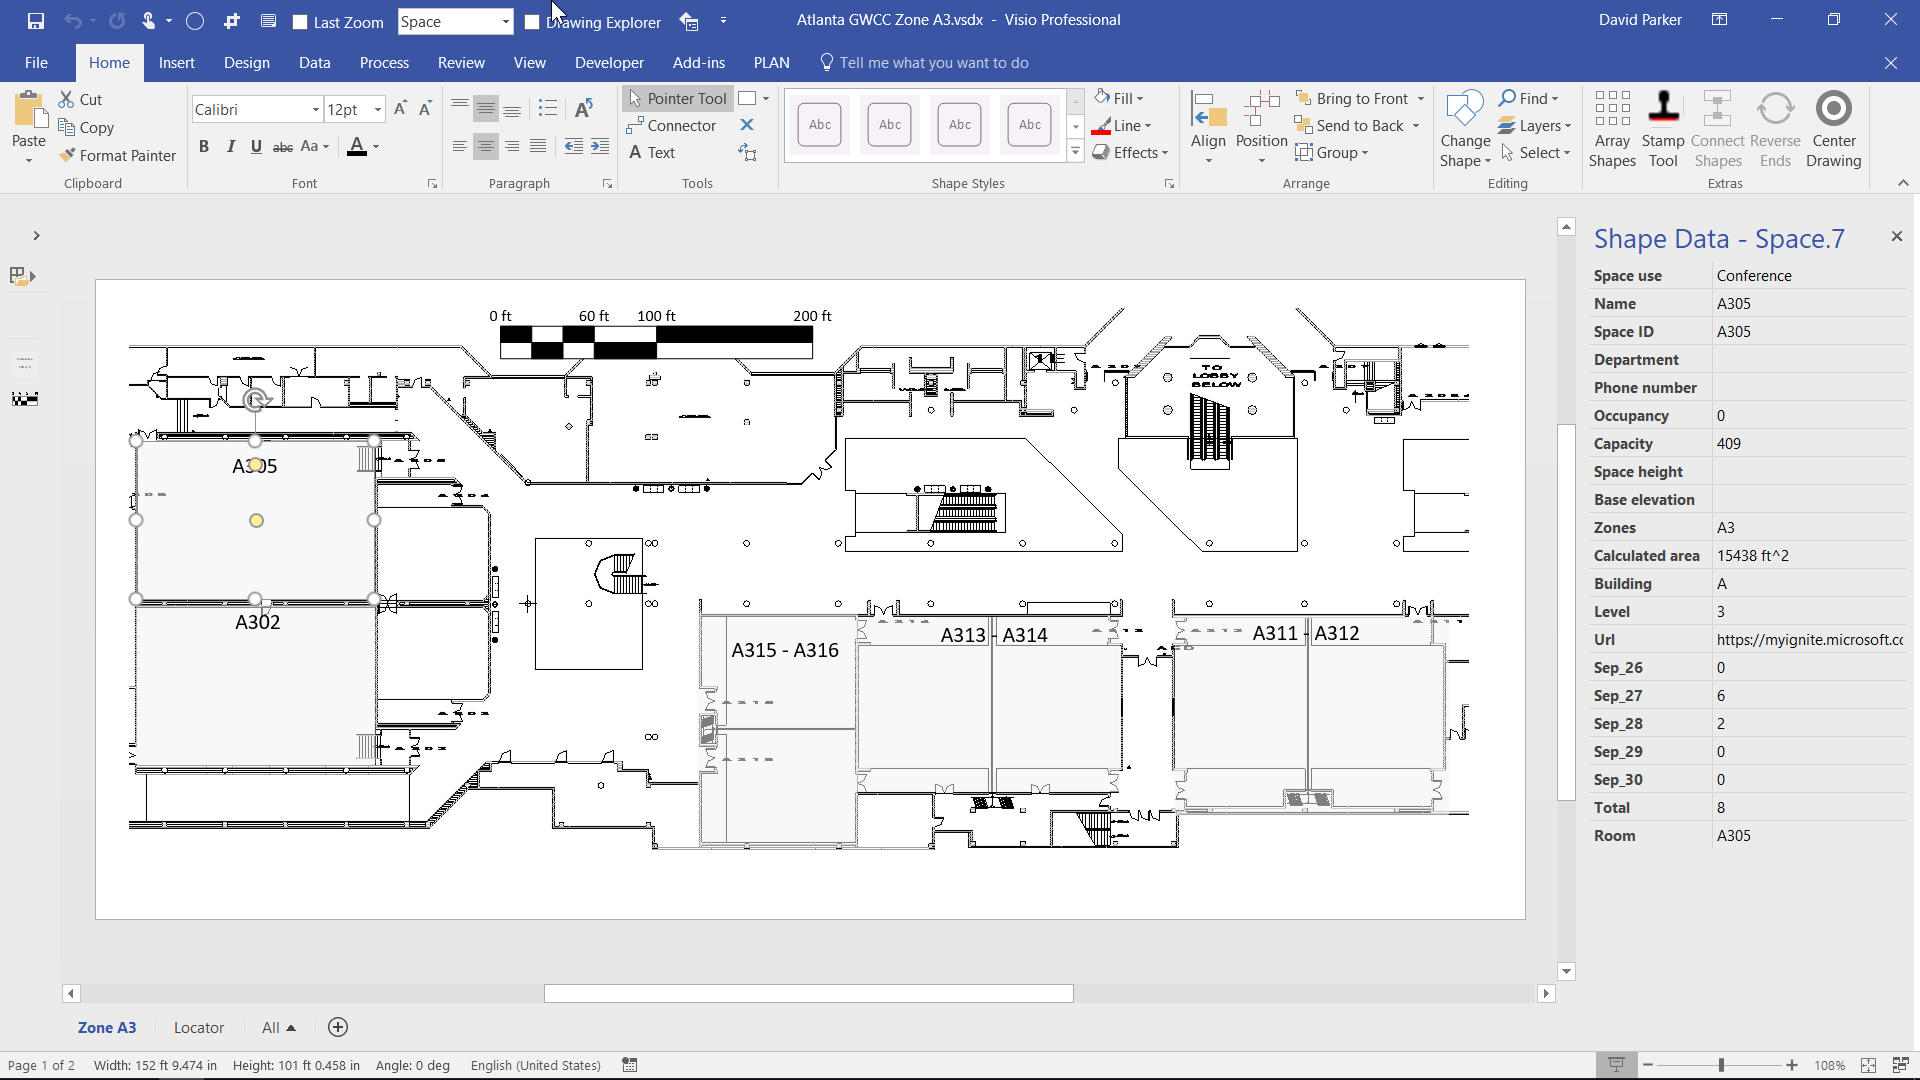 Create a visual report of Project data in Excel or Visio